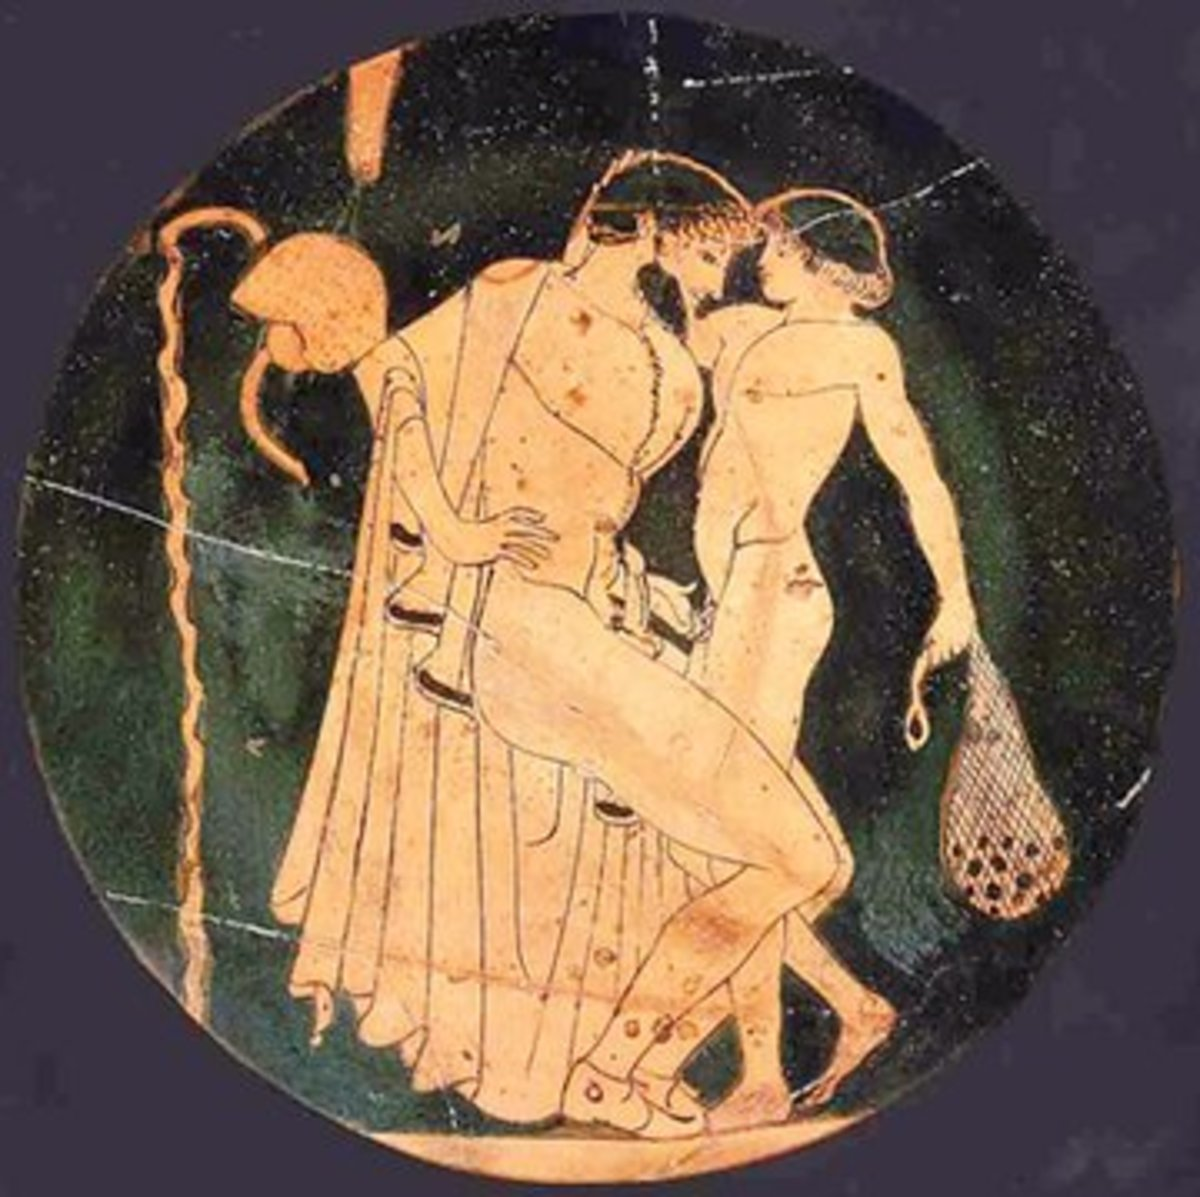 Zeus having fun with yet another mortal, Ganymede